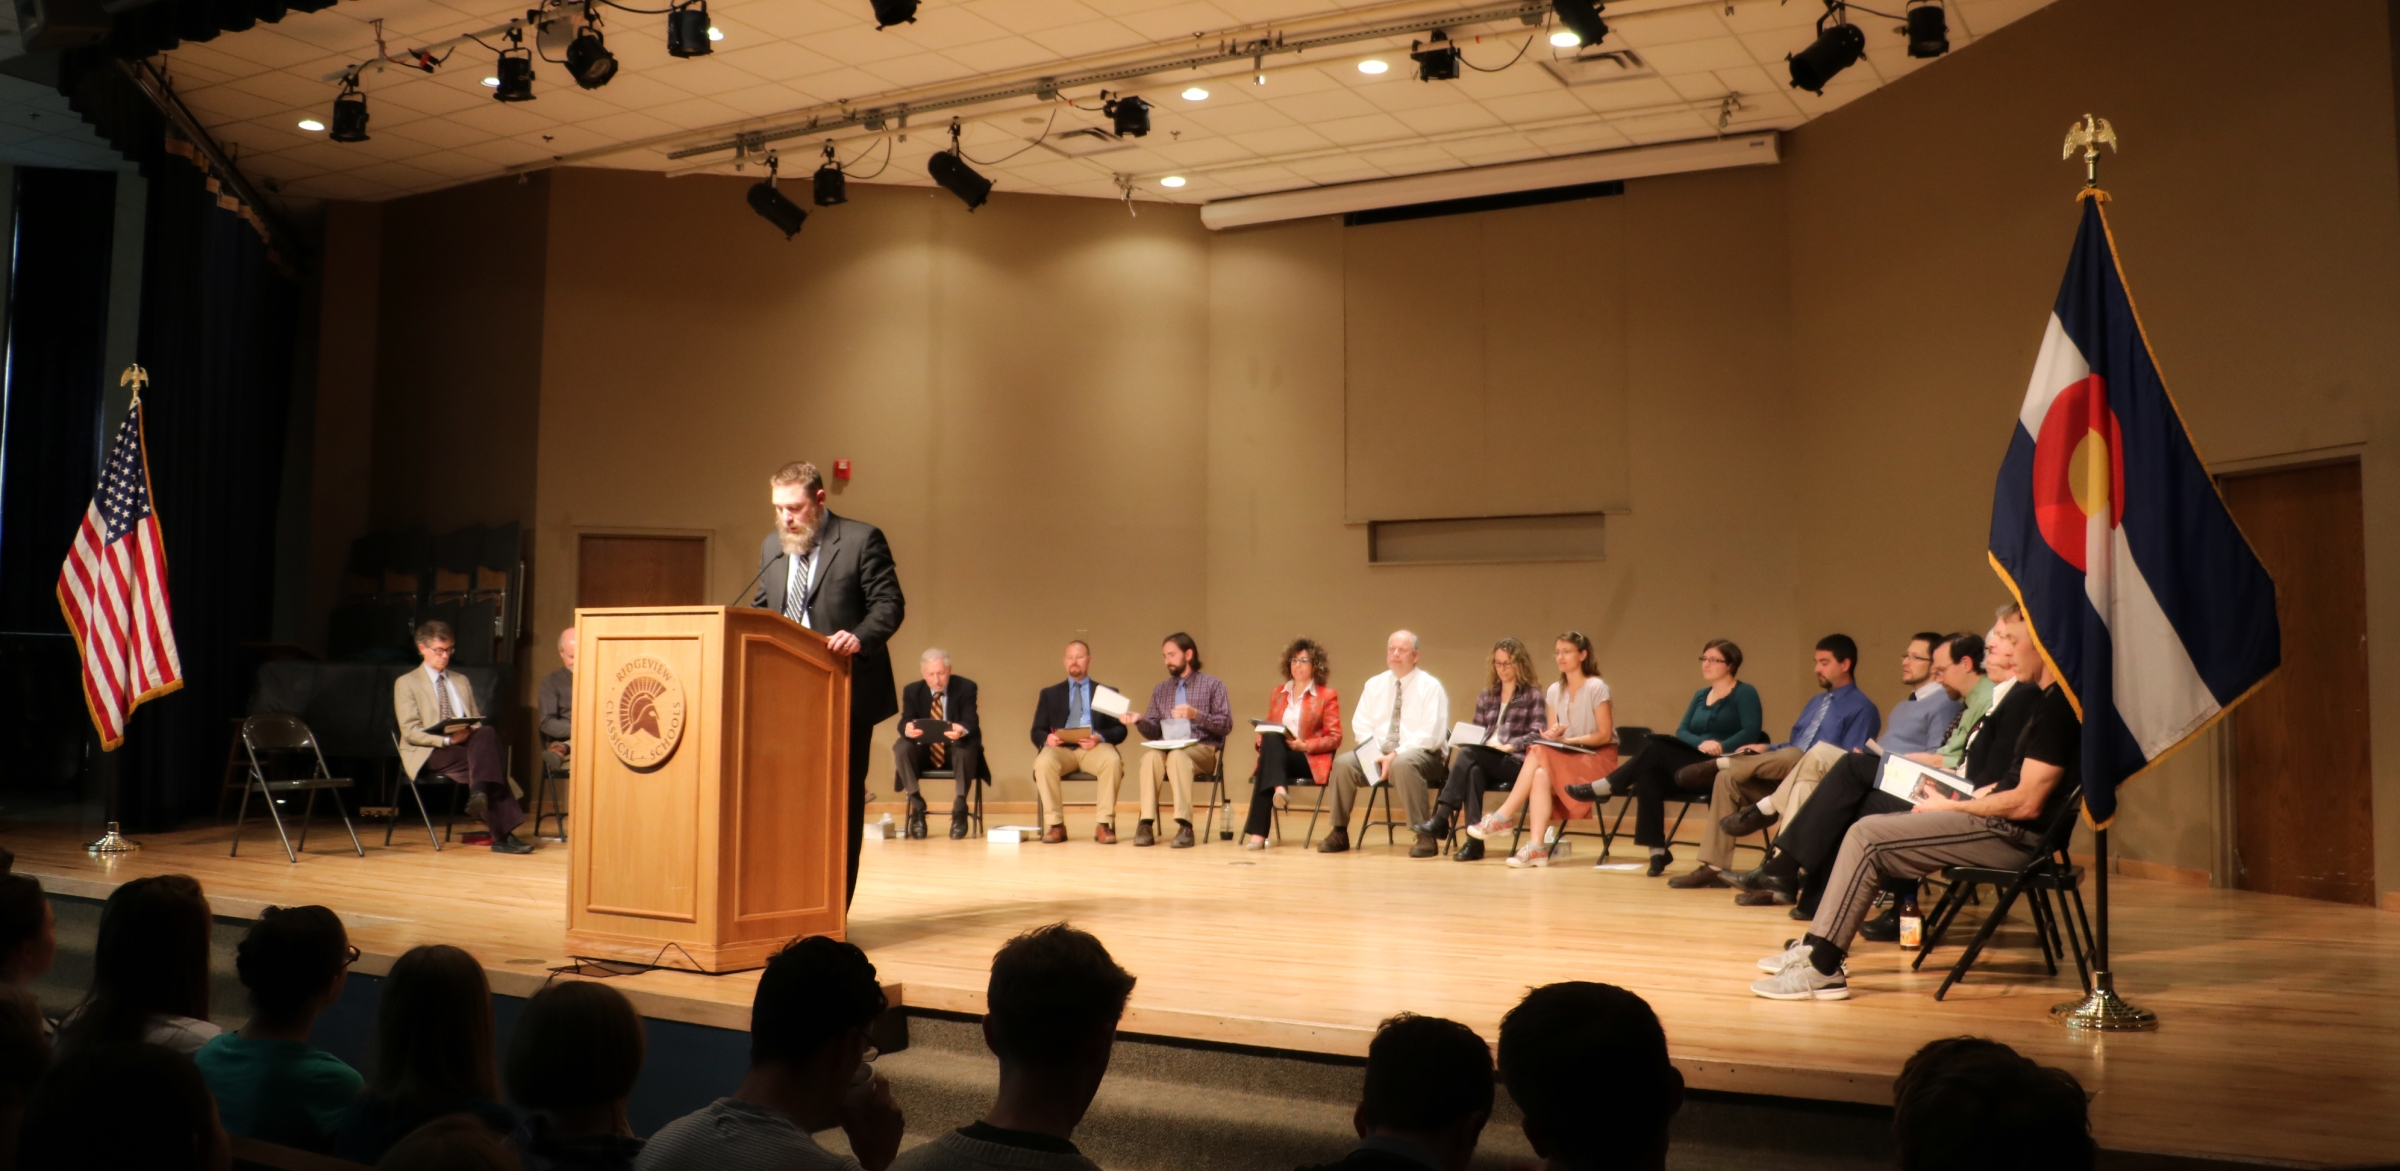 Mr. Anderson speaks at an awards ceremony.